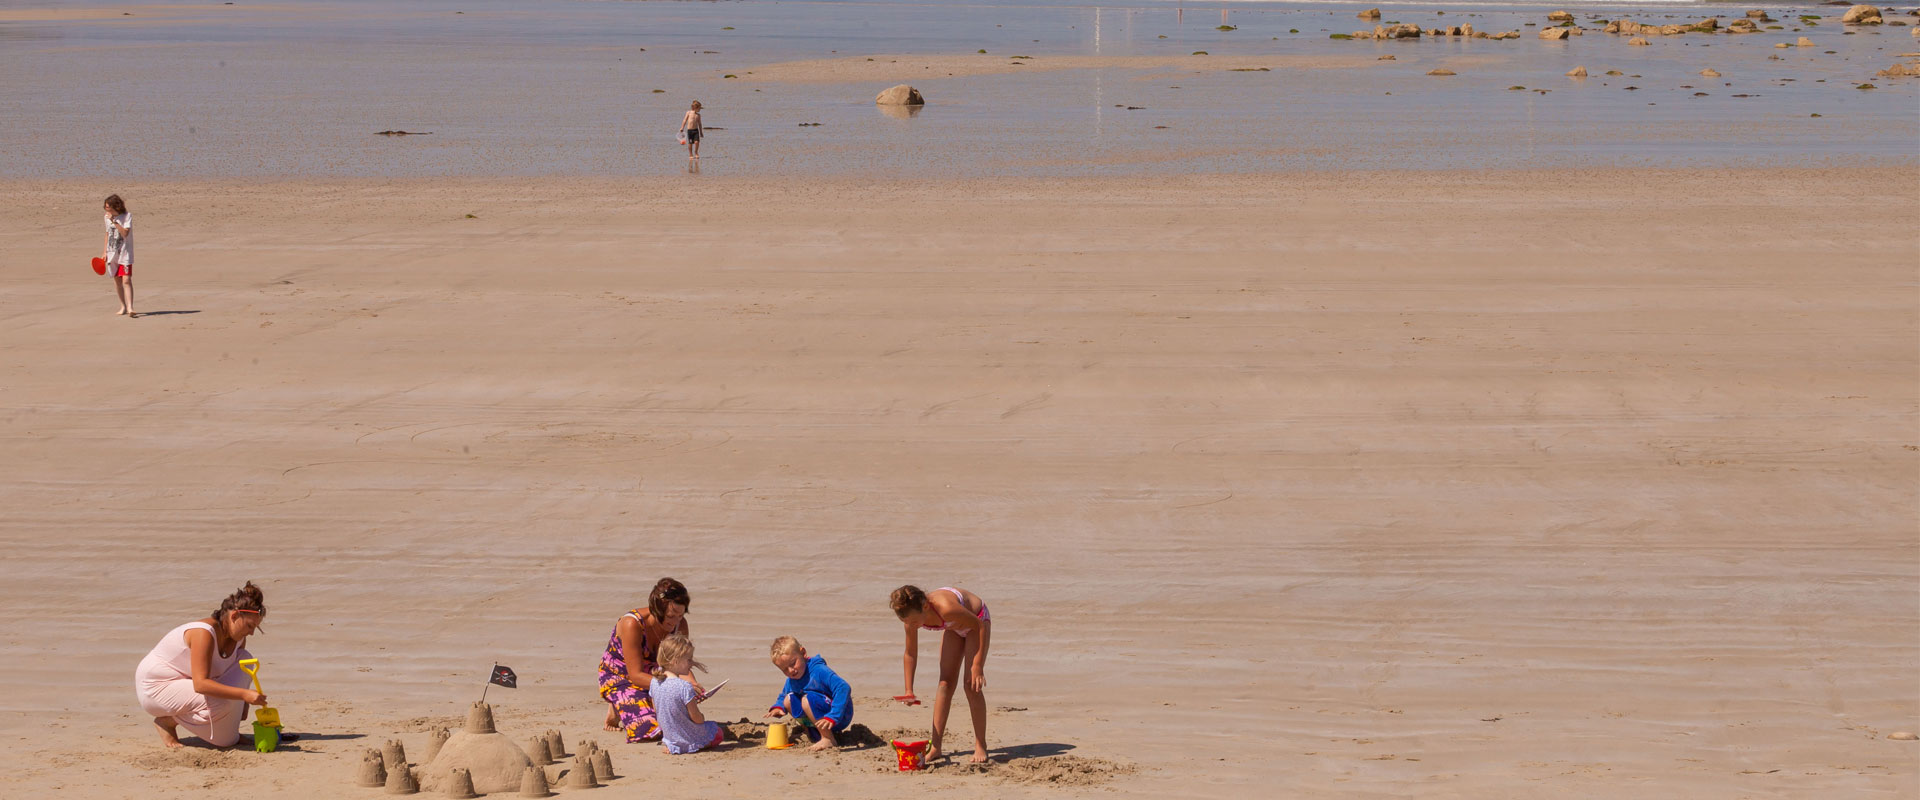 Sandy Beach - Images courtesy of VisitGuernsey